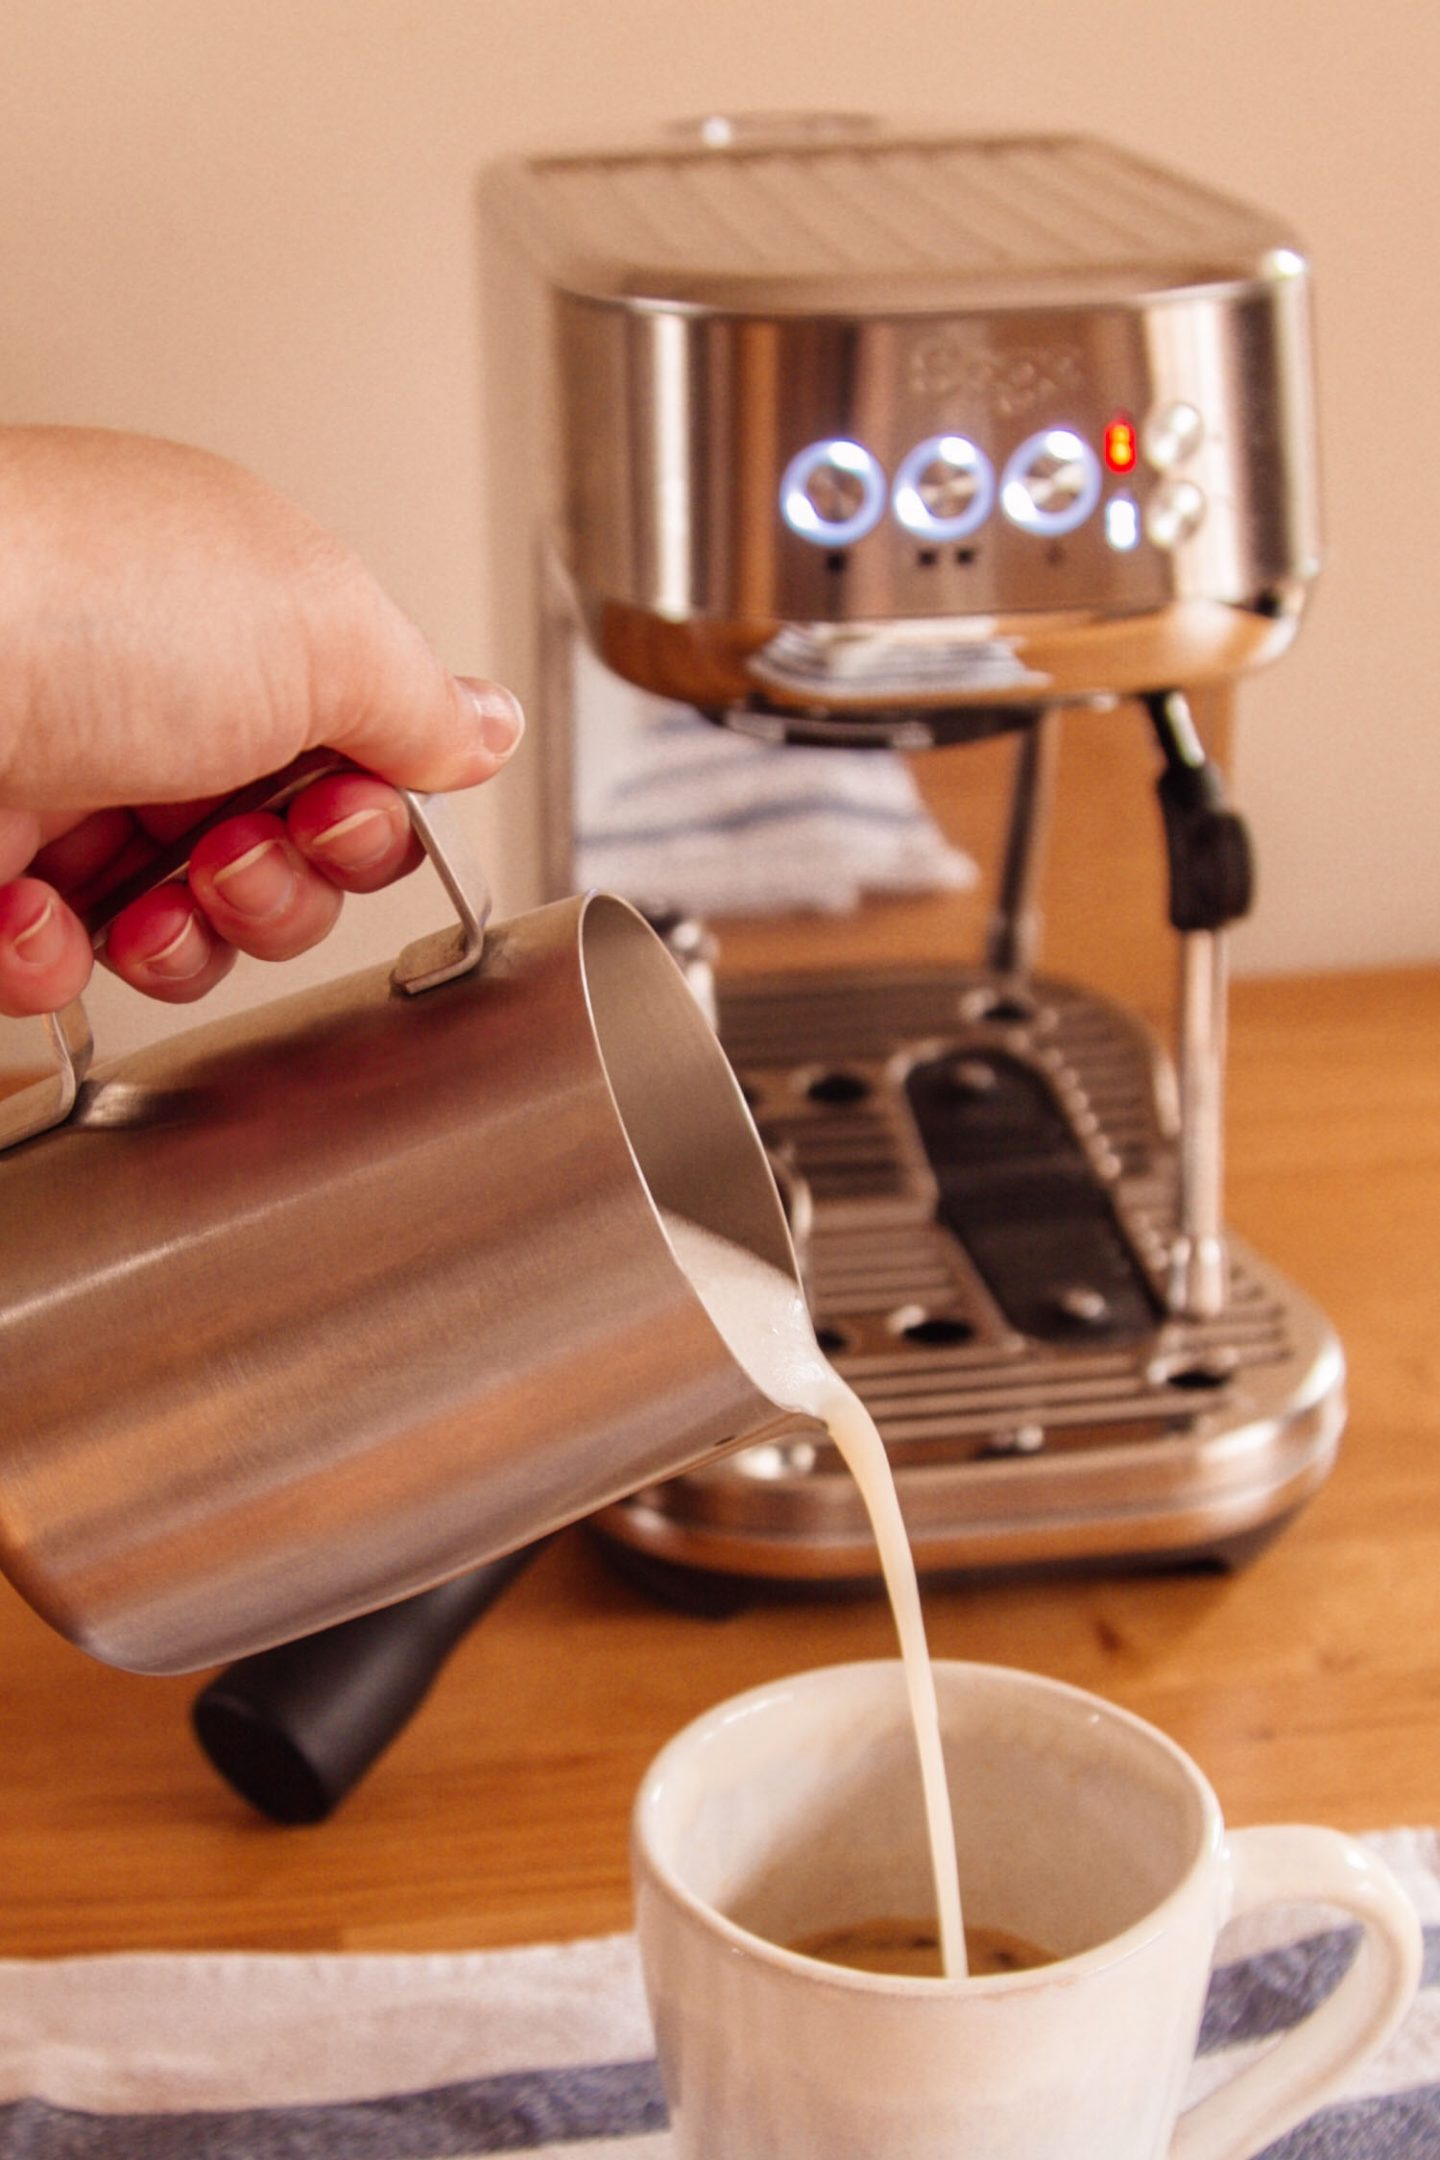 Make your own coffee at home